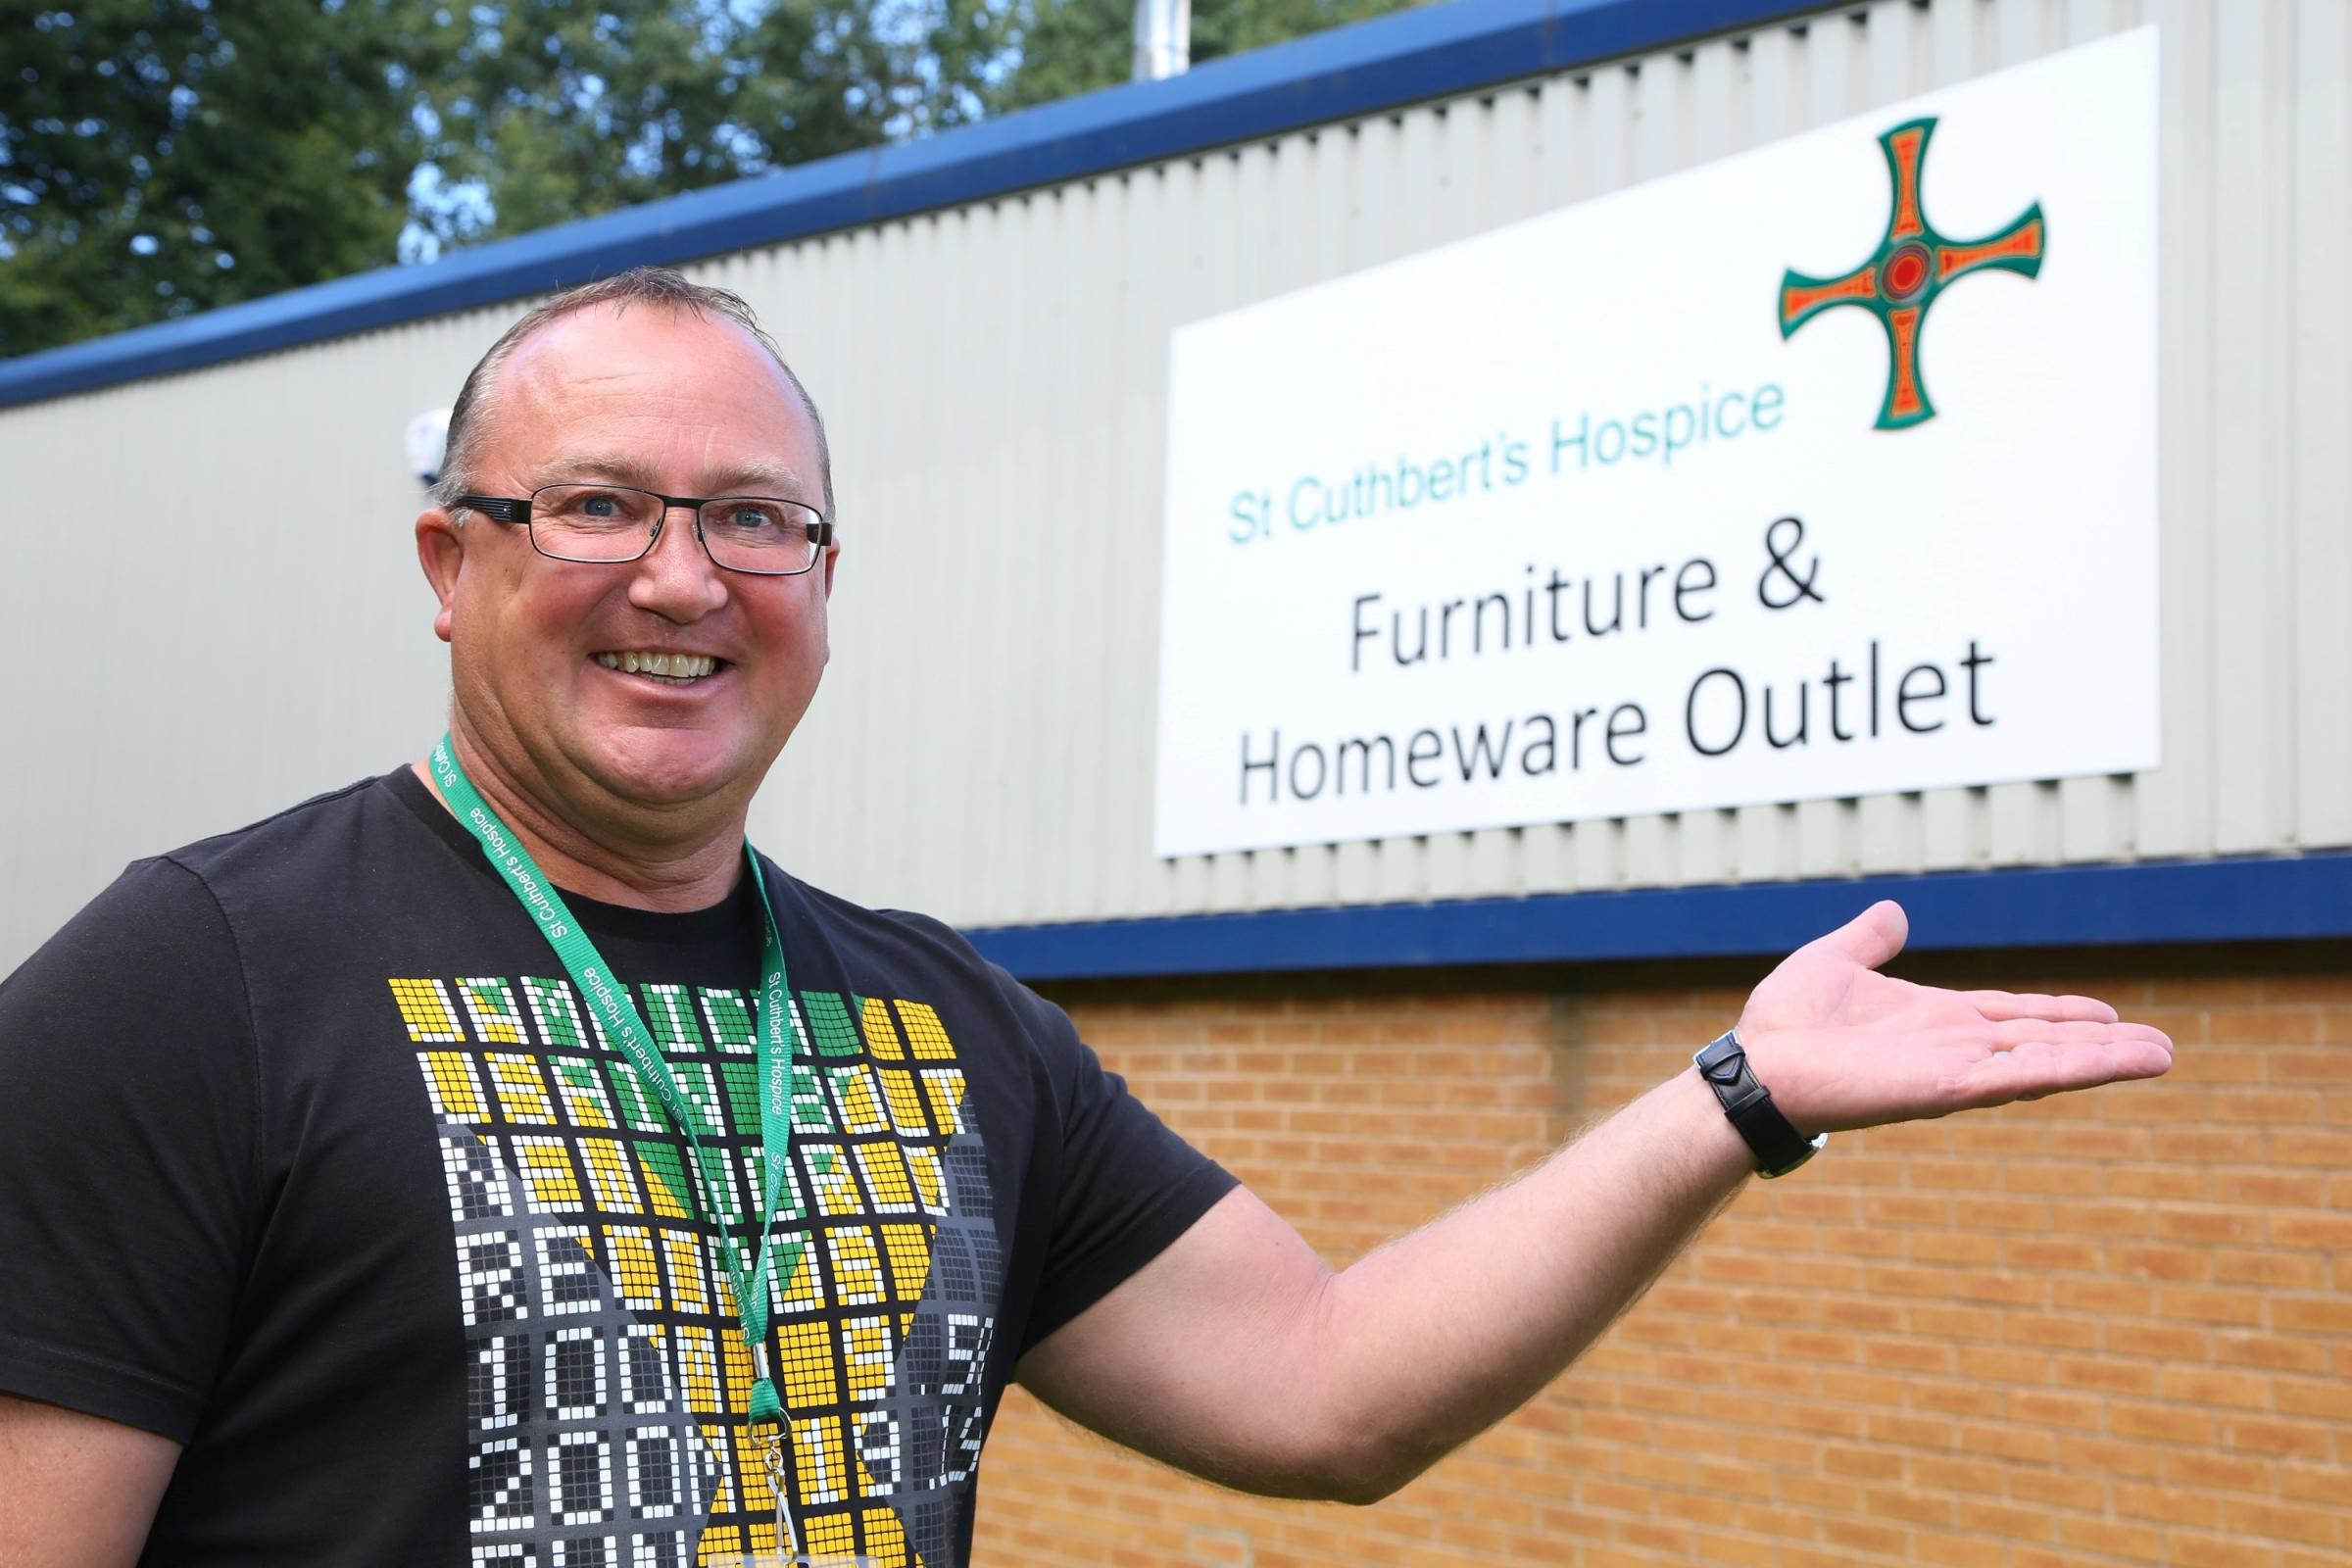 New furniture store boosts hospice